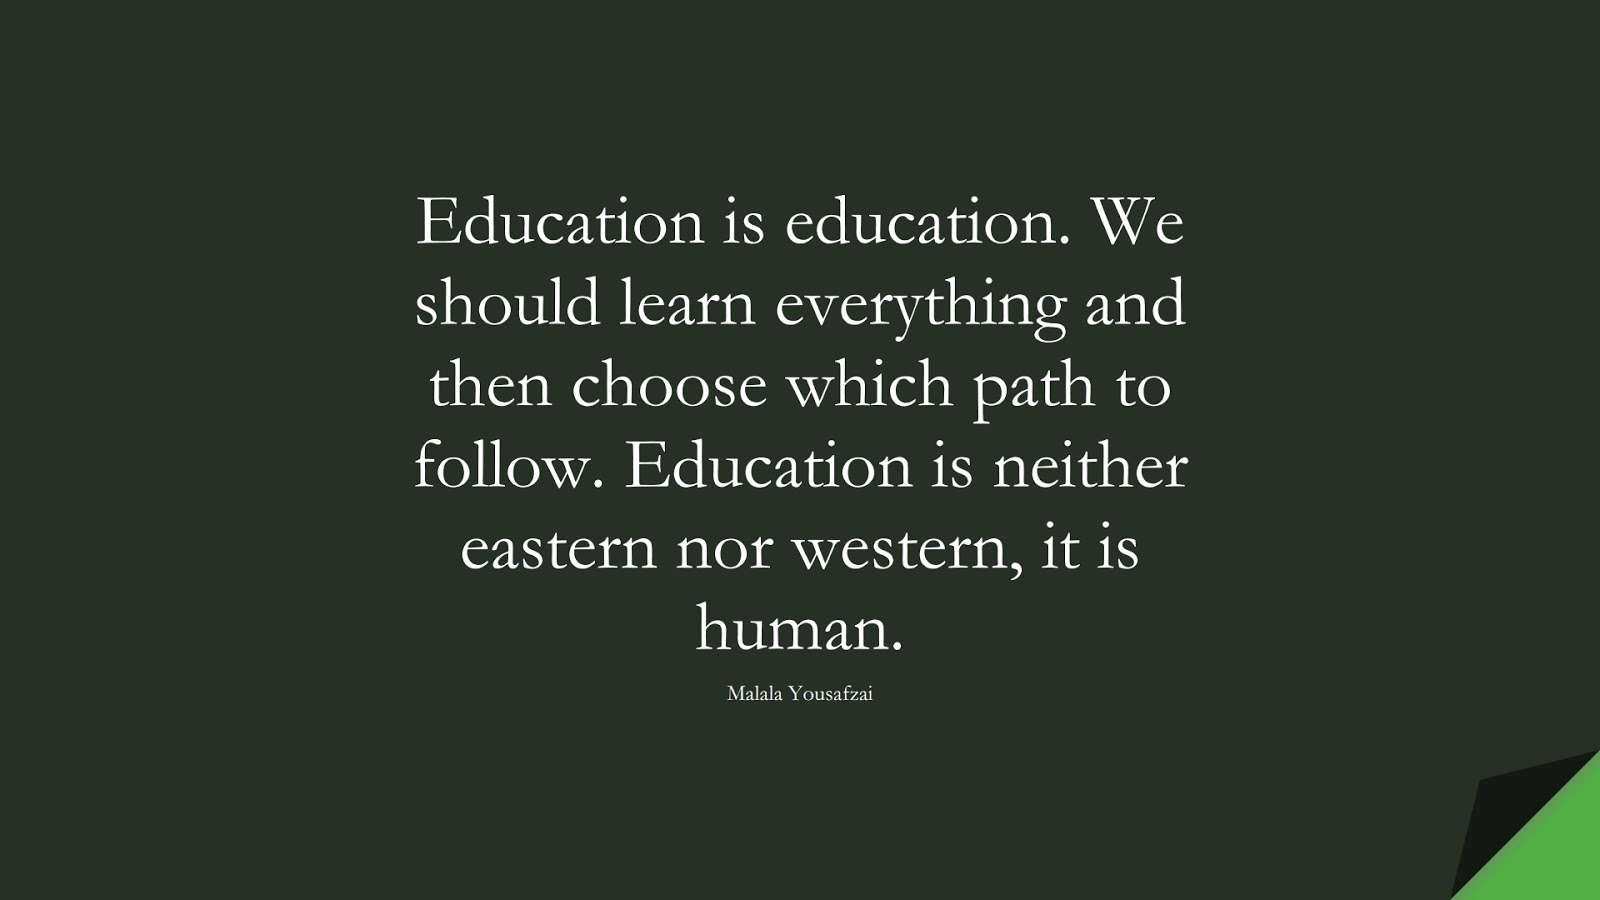 Education is education. We should learn everything and then choose which path to follow. Education is neither eastern nor western, it is human. (Malala Yousafzai);  #HumanityQuotes